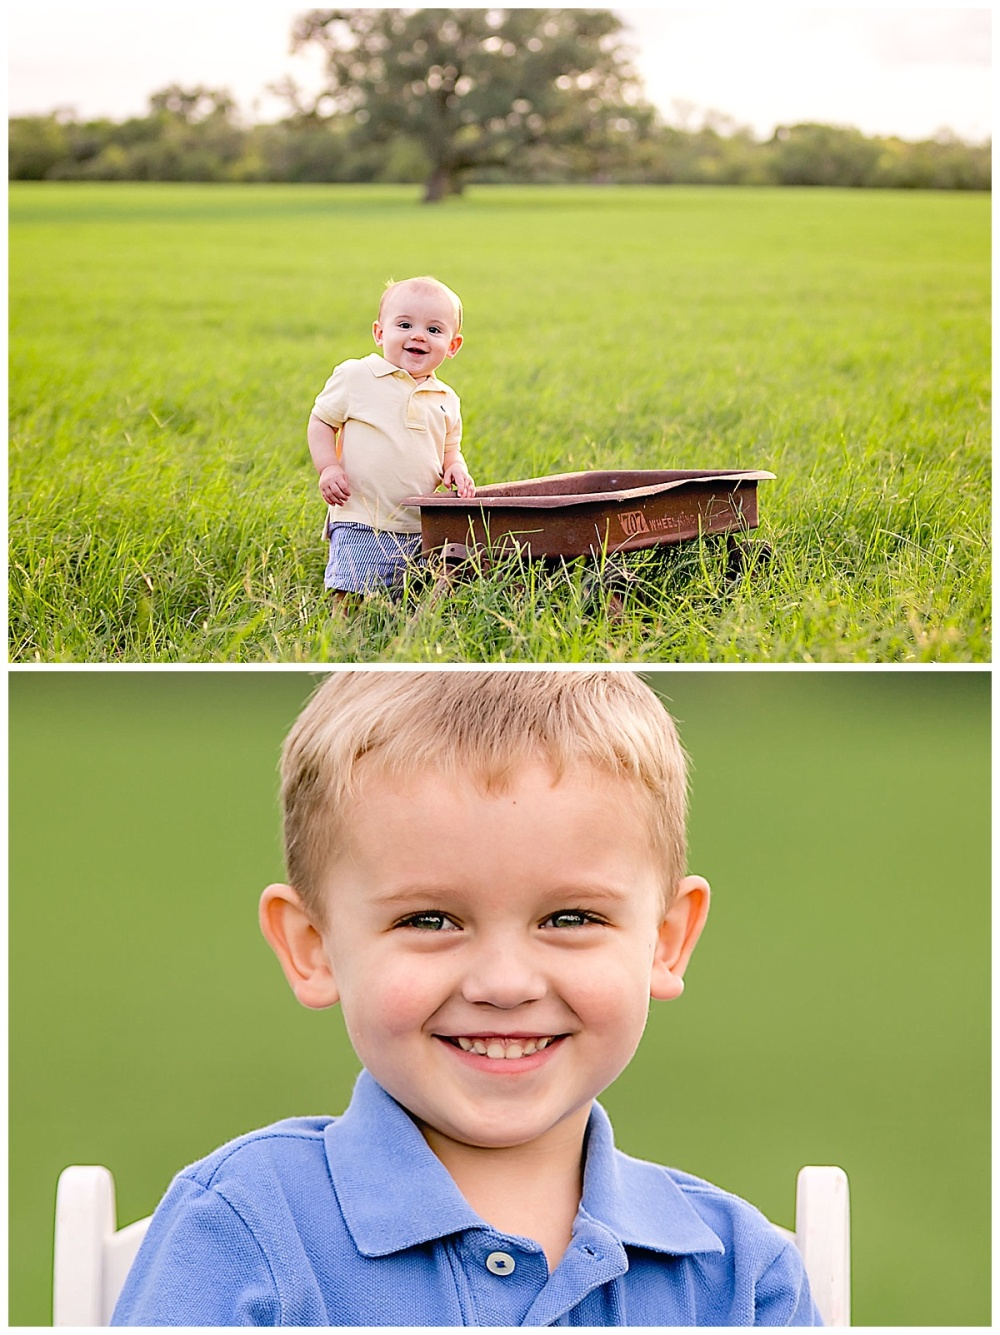 Carly-Barton-Photography-Texas-Family-Photos-Rustic-Field-Cake-Smash-Voss_0011.jpg